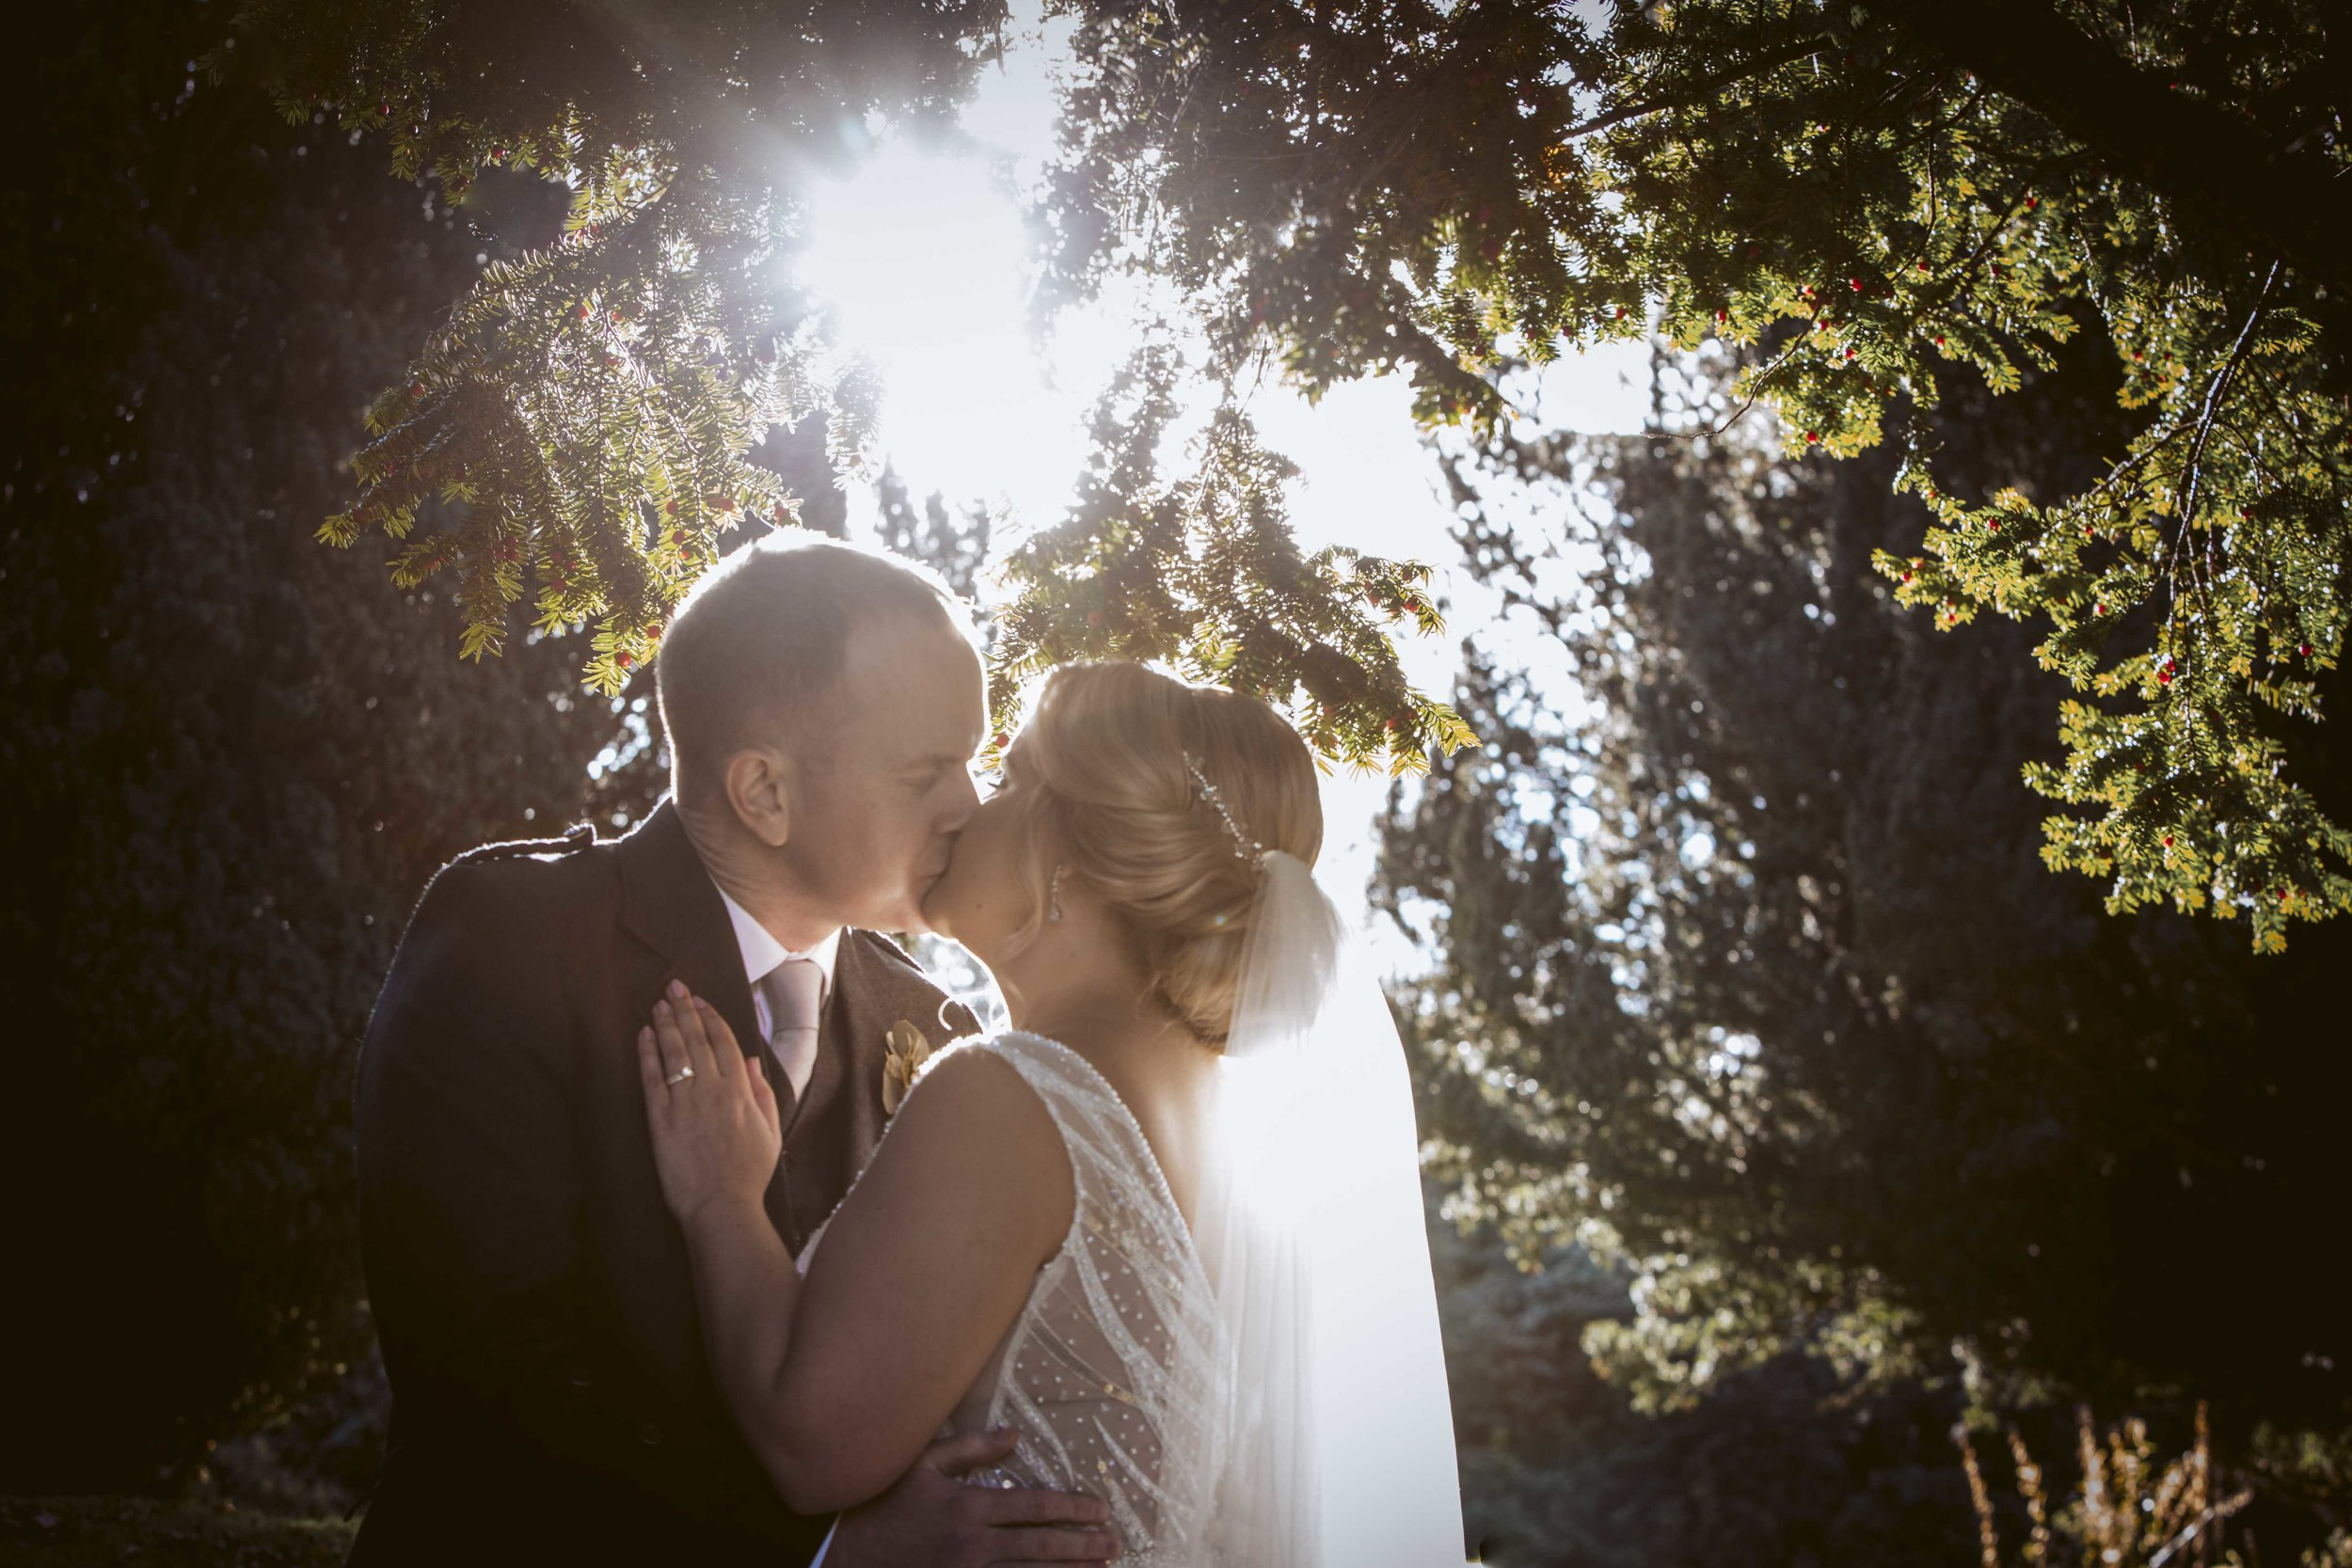 Mar Hall Wedding 2018, Haminsh & Emma McEwan 38.JPG